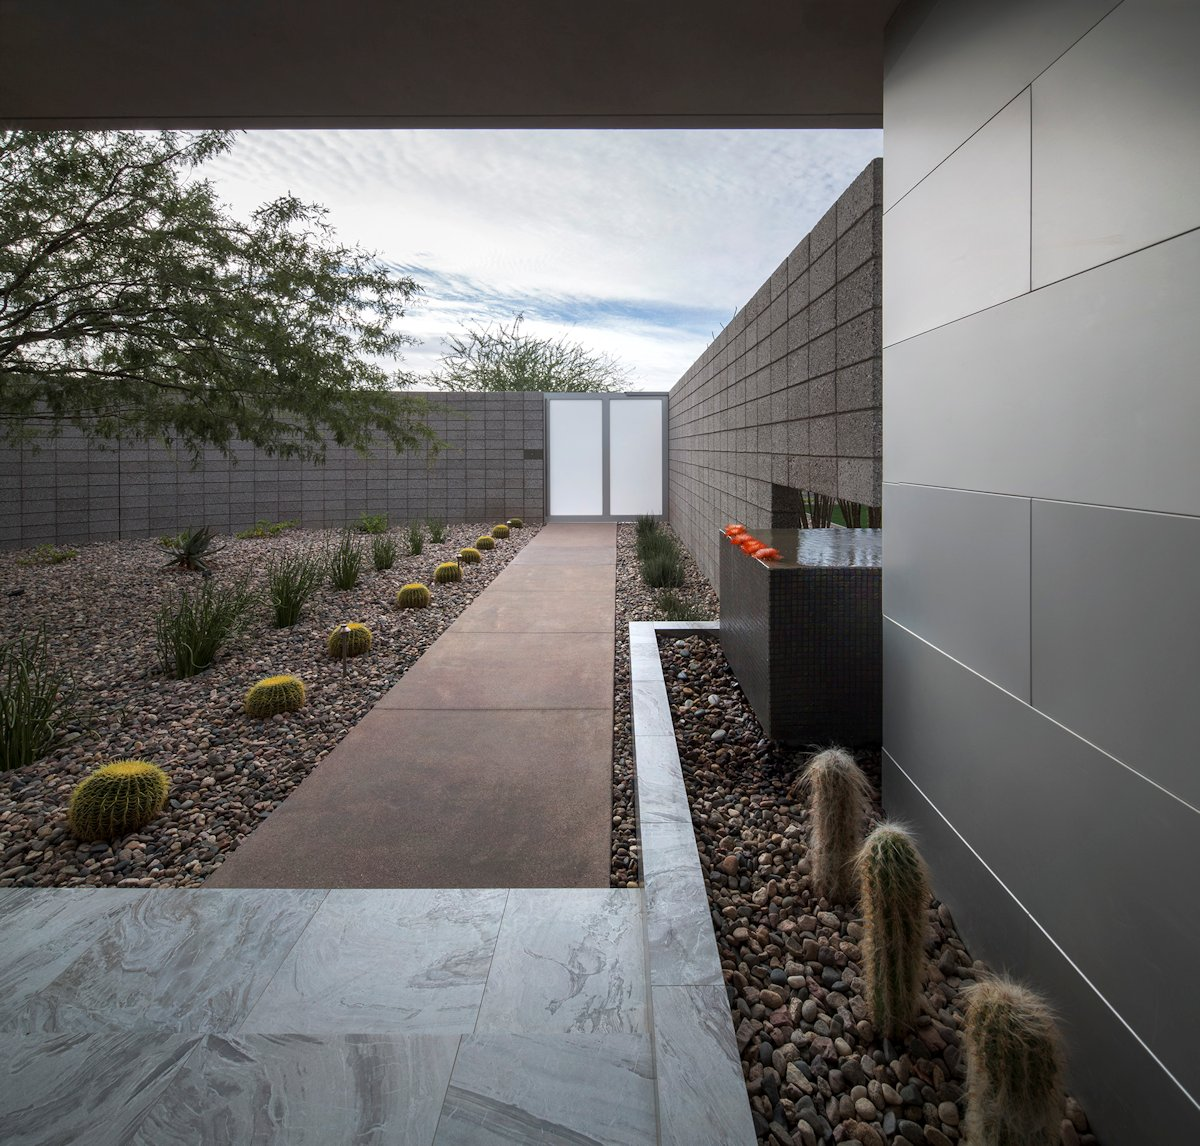 Marble Tiles, Pathway, Mid-Century Modern Home in Scottsdale, Arizona